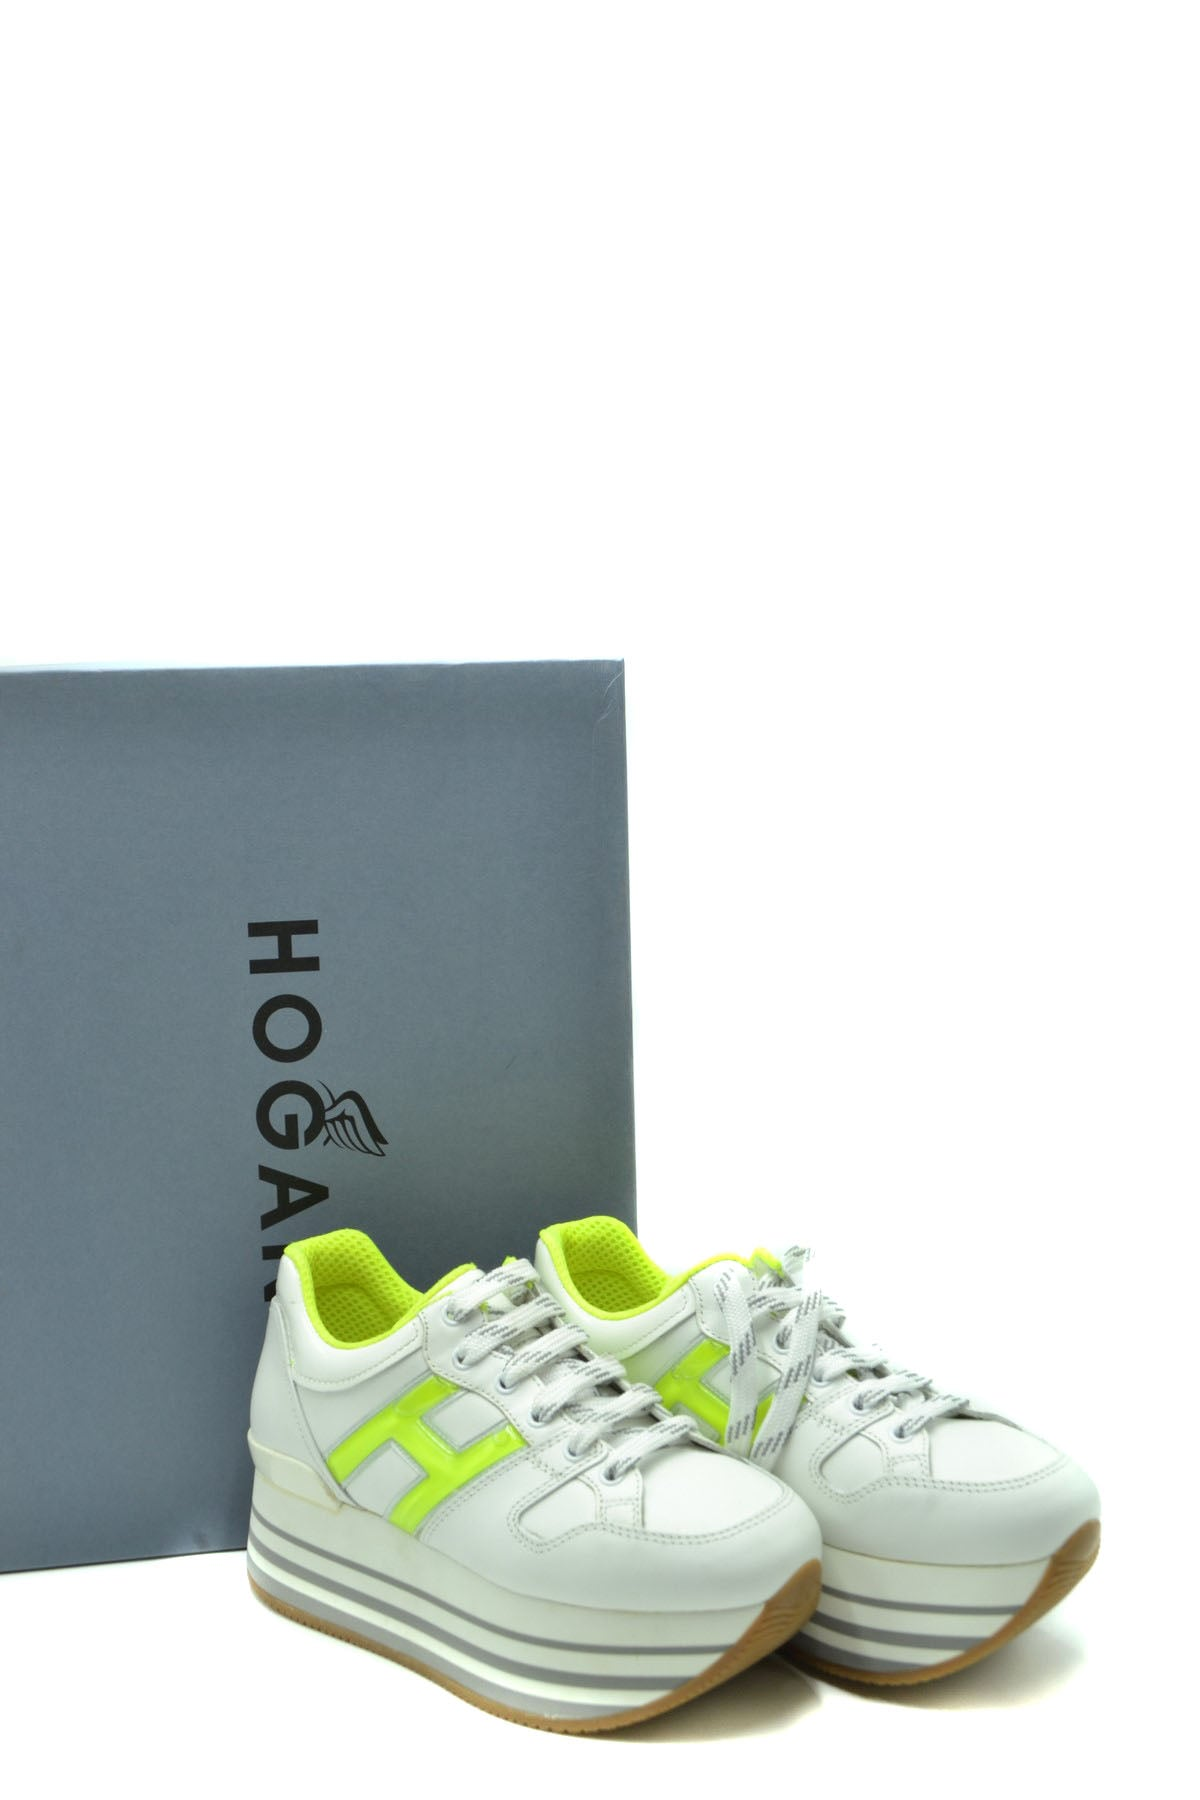 Shoes Hogan-Sports & Entertainment - Sneakers-Product Details Terms: New With LabelMain Color: WhiteType Of Accessory: ShoesSeason: Spring / SummerMade In: ItalyGender: WomanSize: EuComposition: Leather 100%Year: 2020Manufacturer Part Number: Hxw2830Bg50I6S9999-Keyomi-Sook